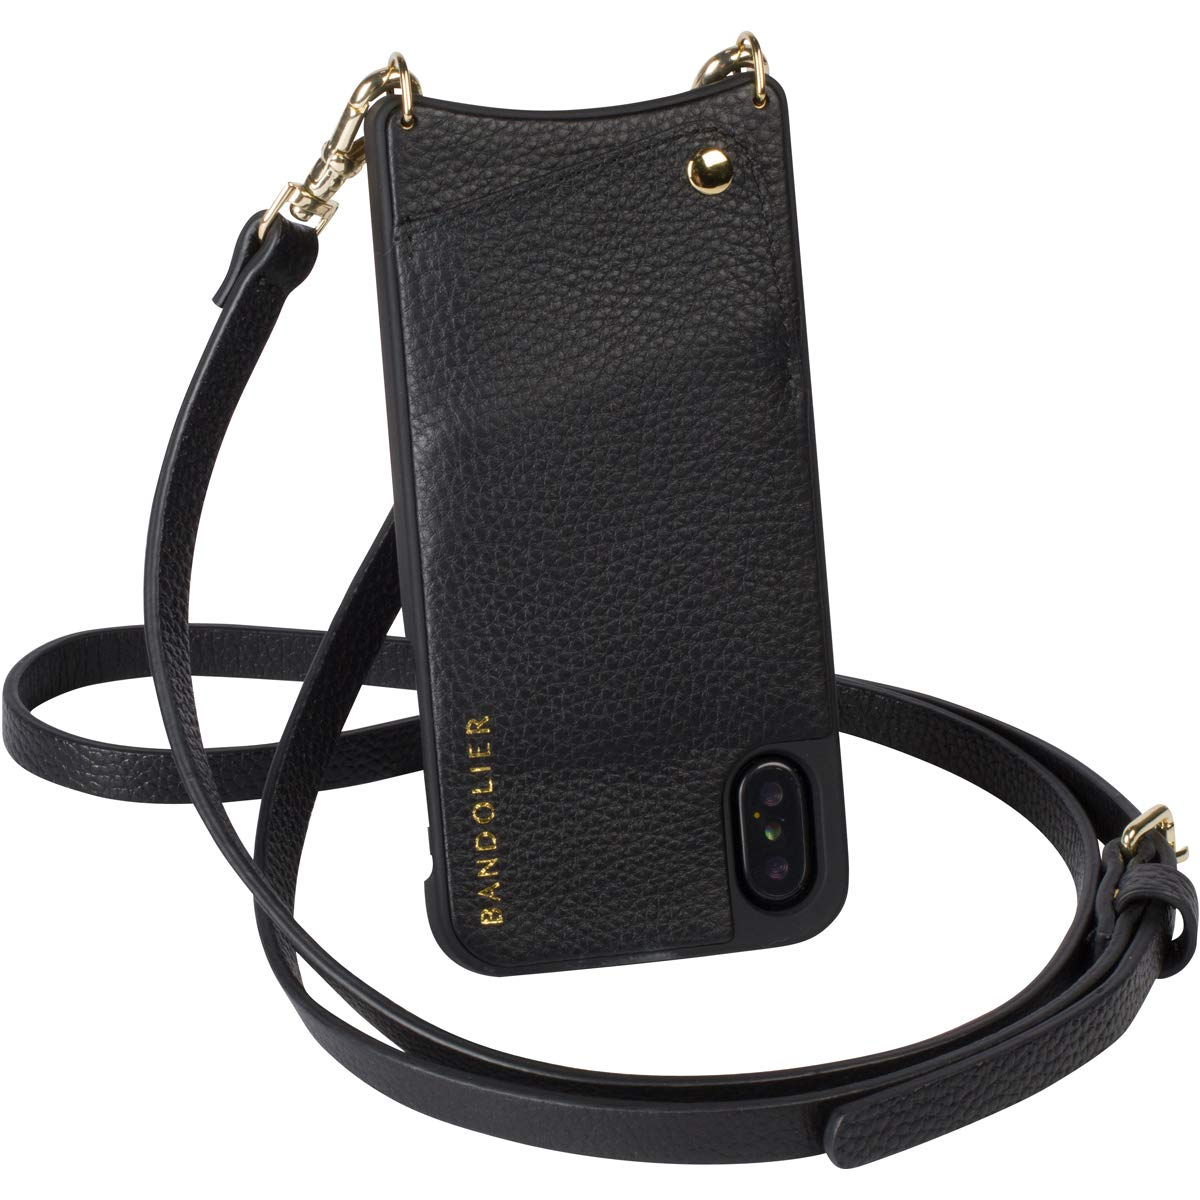 Bandolier [Emma] Crossbody Phone Case and Wallet - Compatible with iPhone X & XS - Black Pebble Leather with Gold Detail by Bandolier